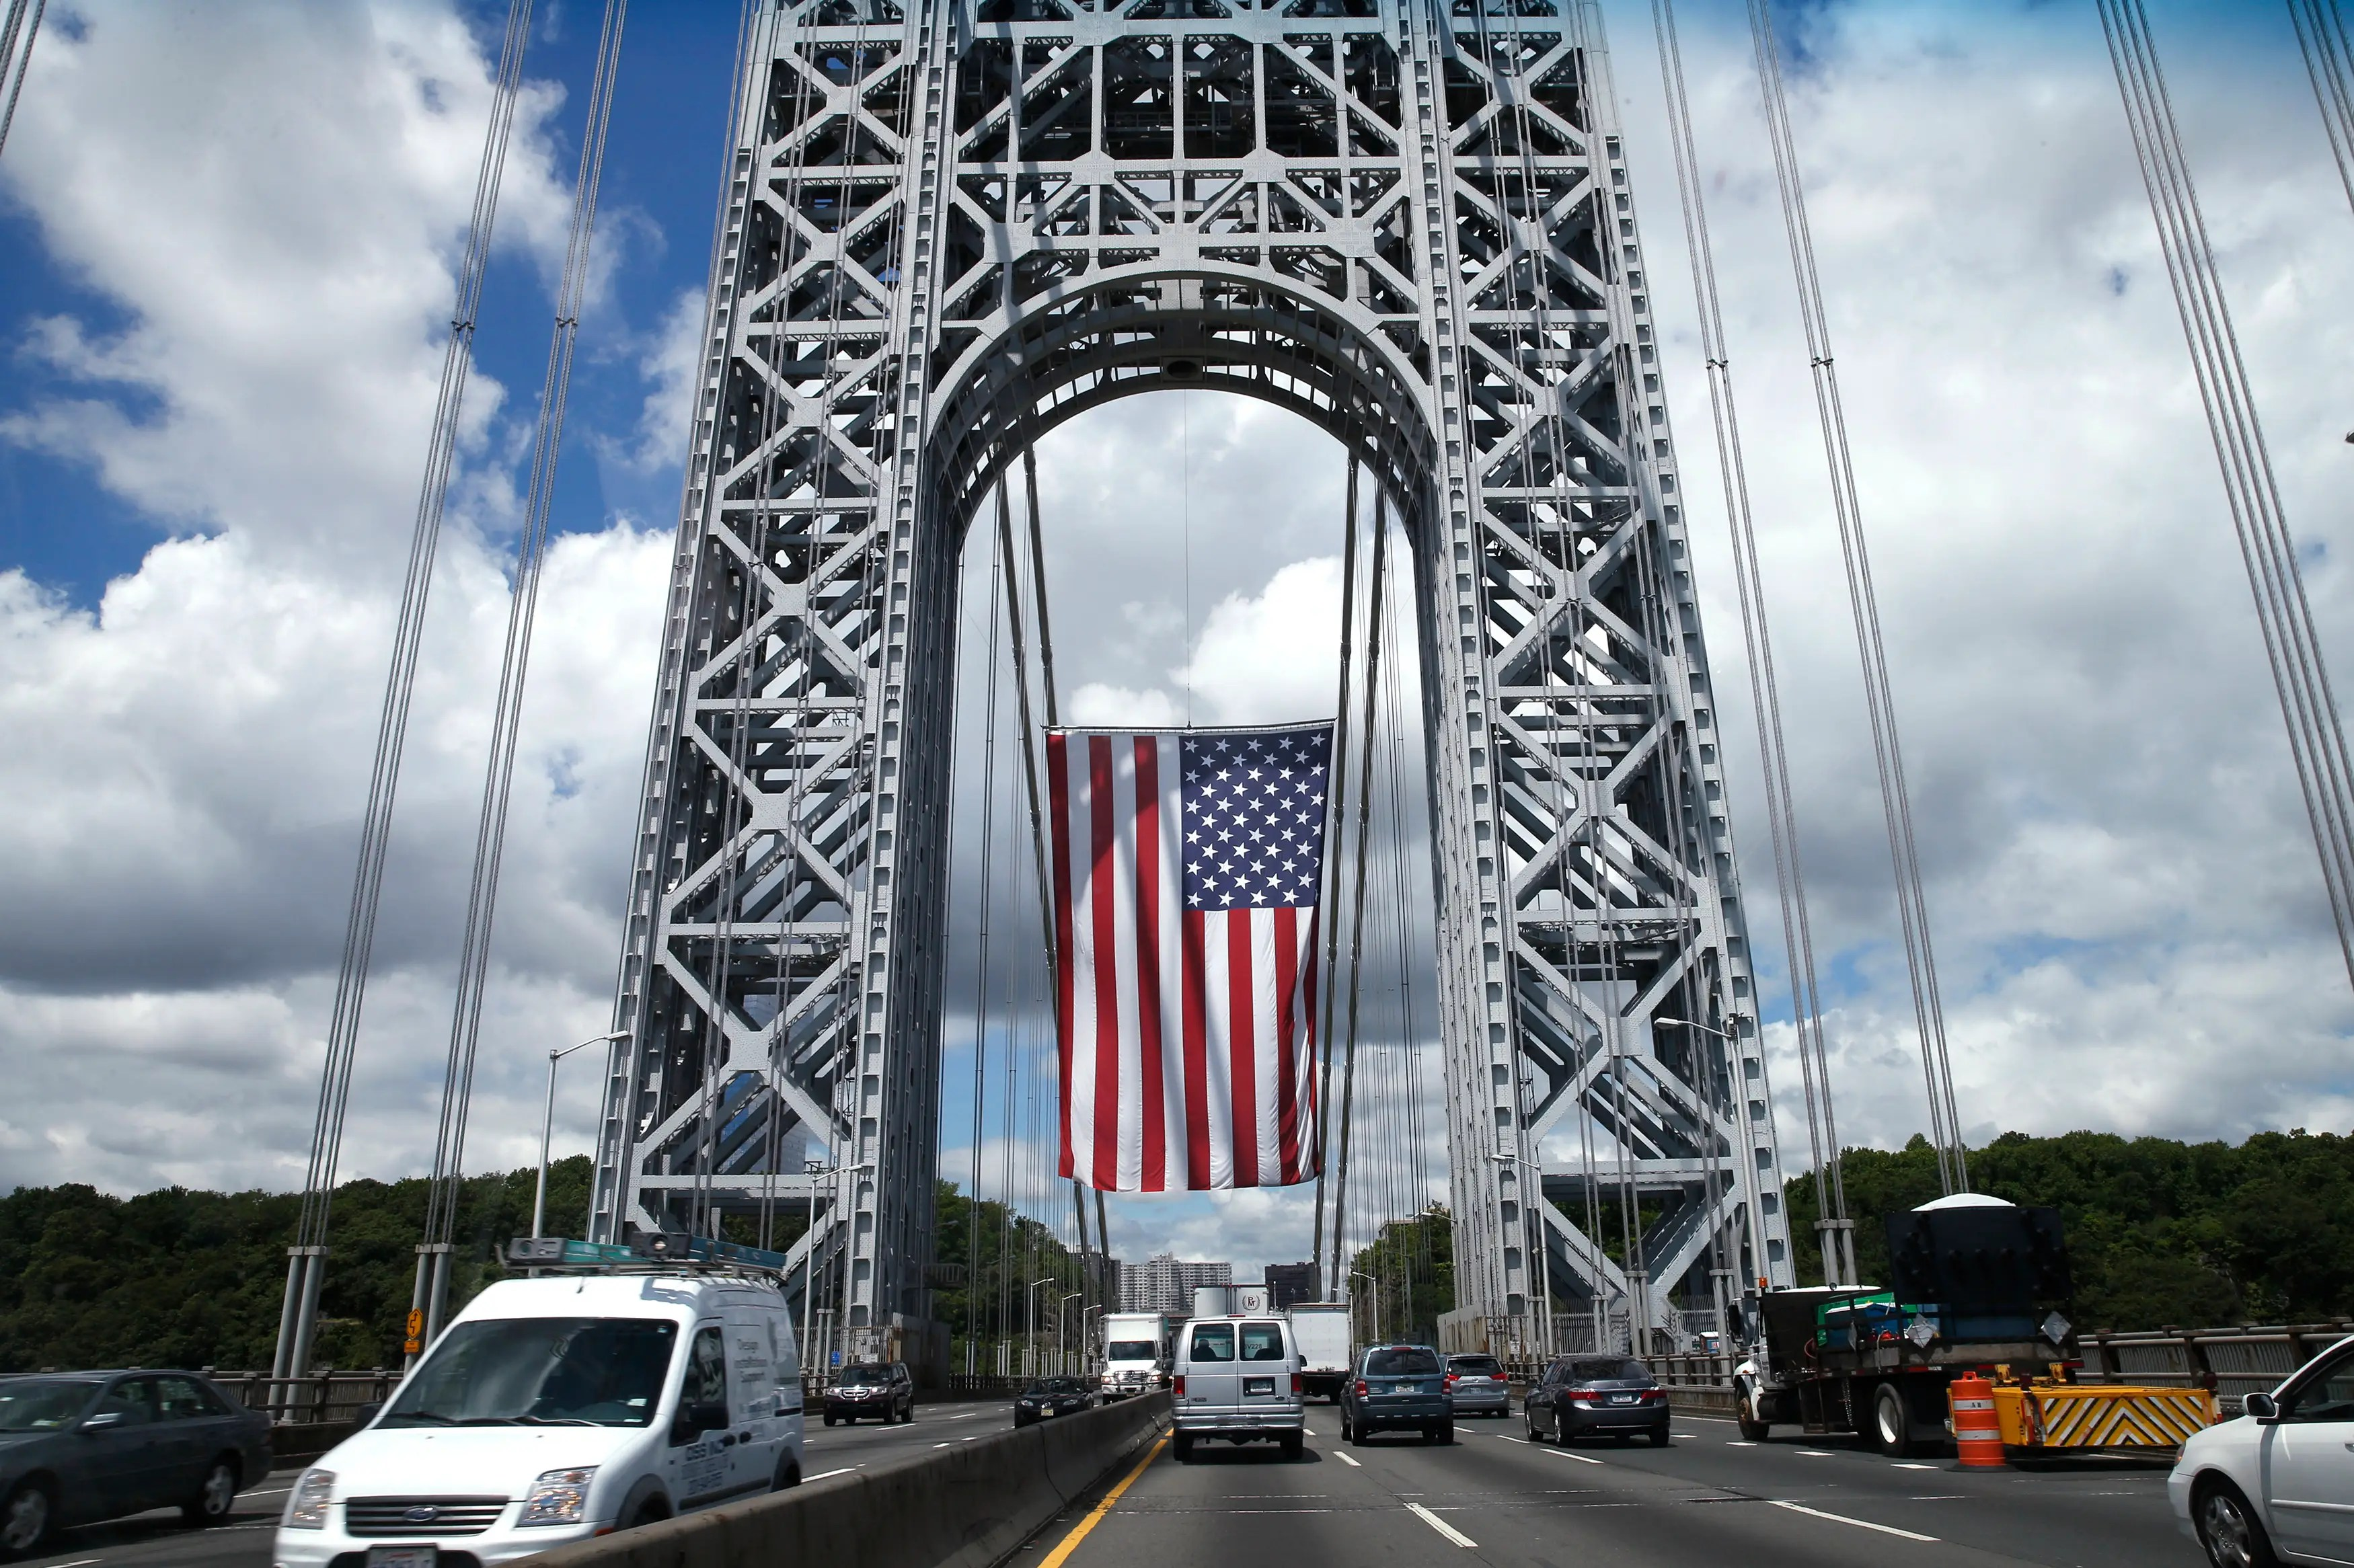 Business Insider photo of a giant flag suspended at the George Washington Bridge between New York City and New Jersey, on September 2, 2013